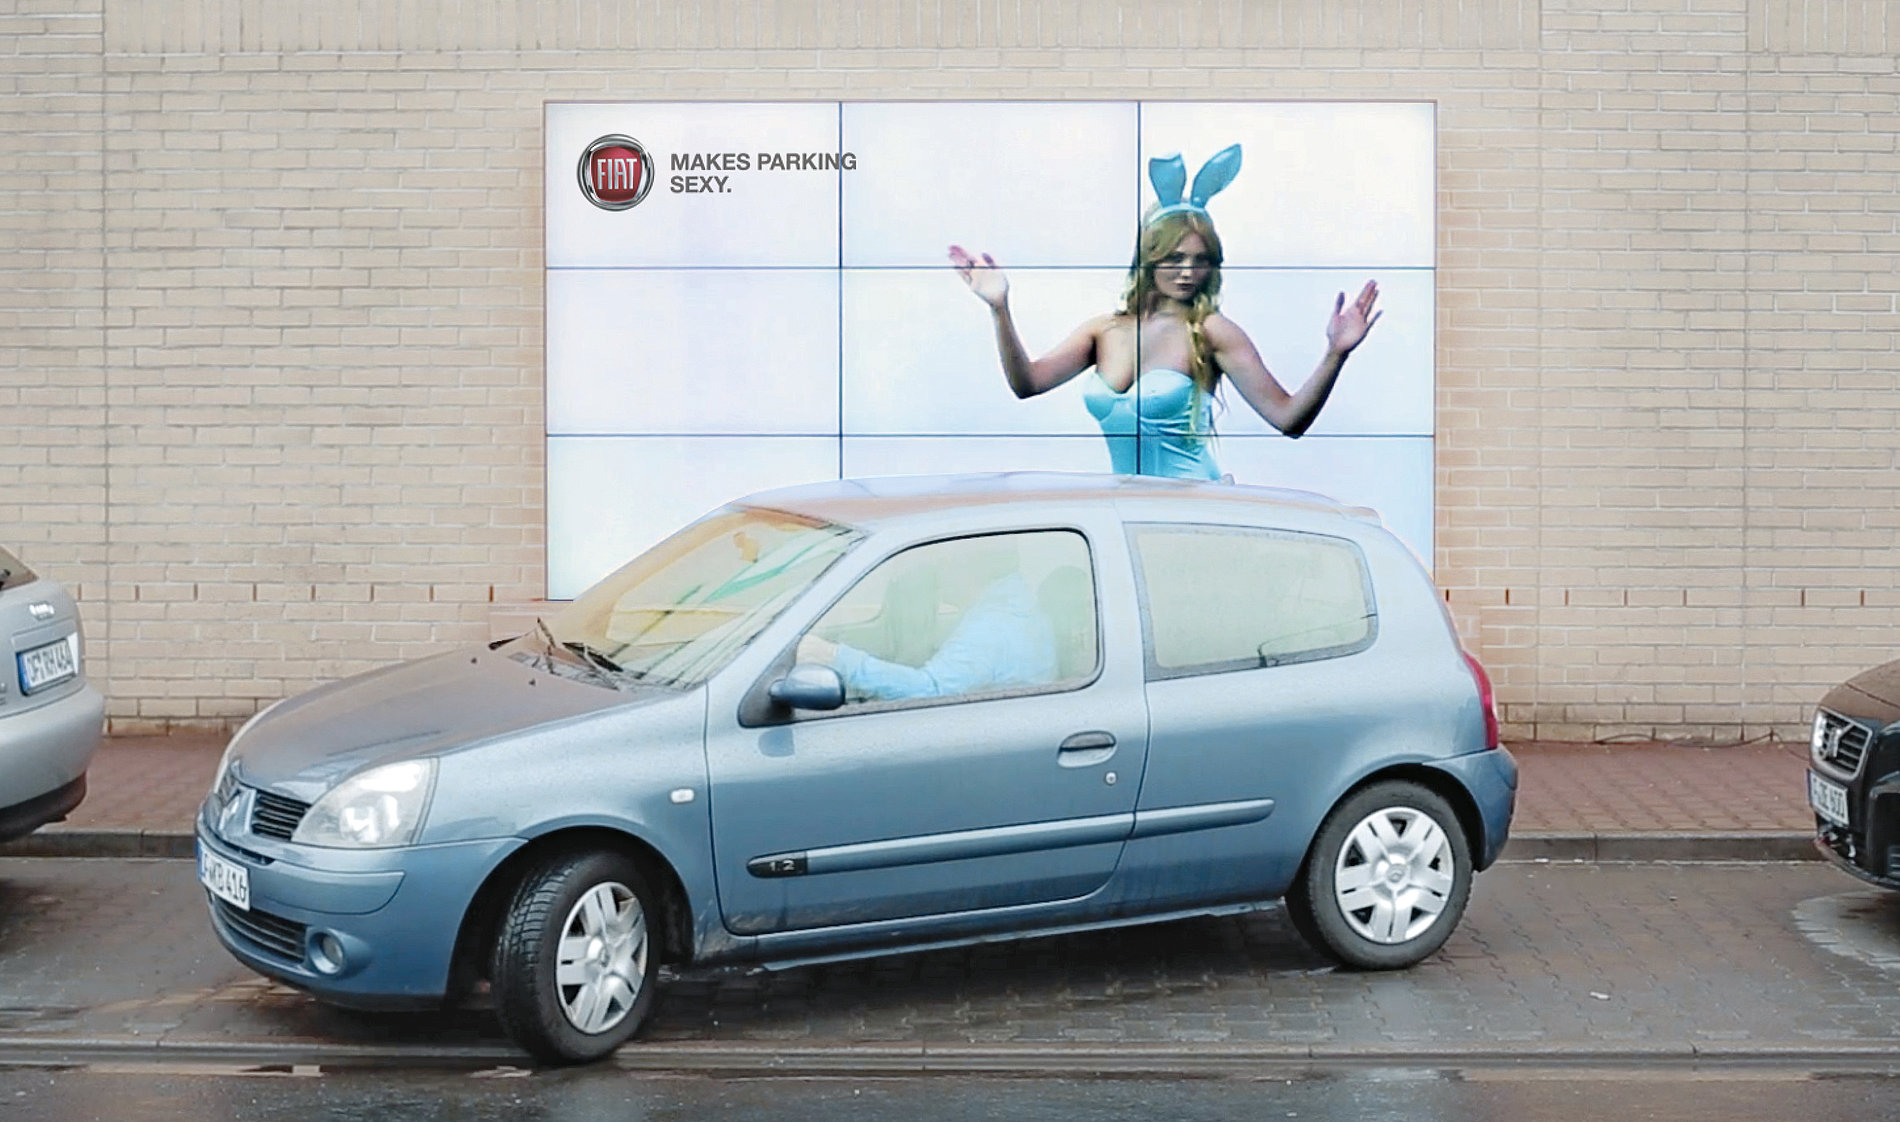 The Interactive Parking Billboard | Red Dot Design Award